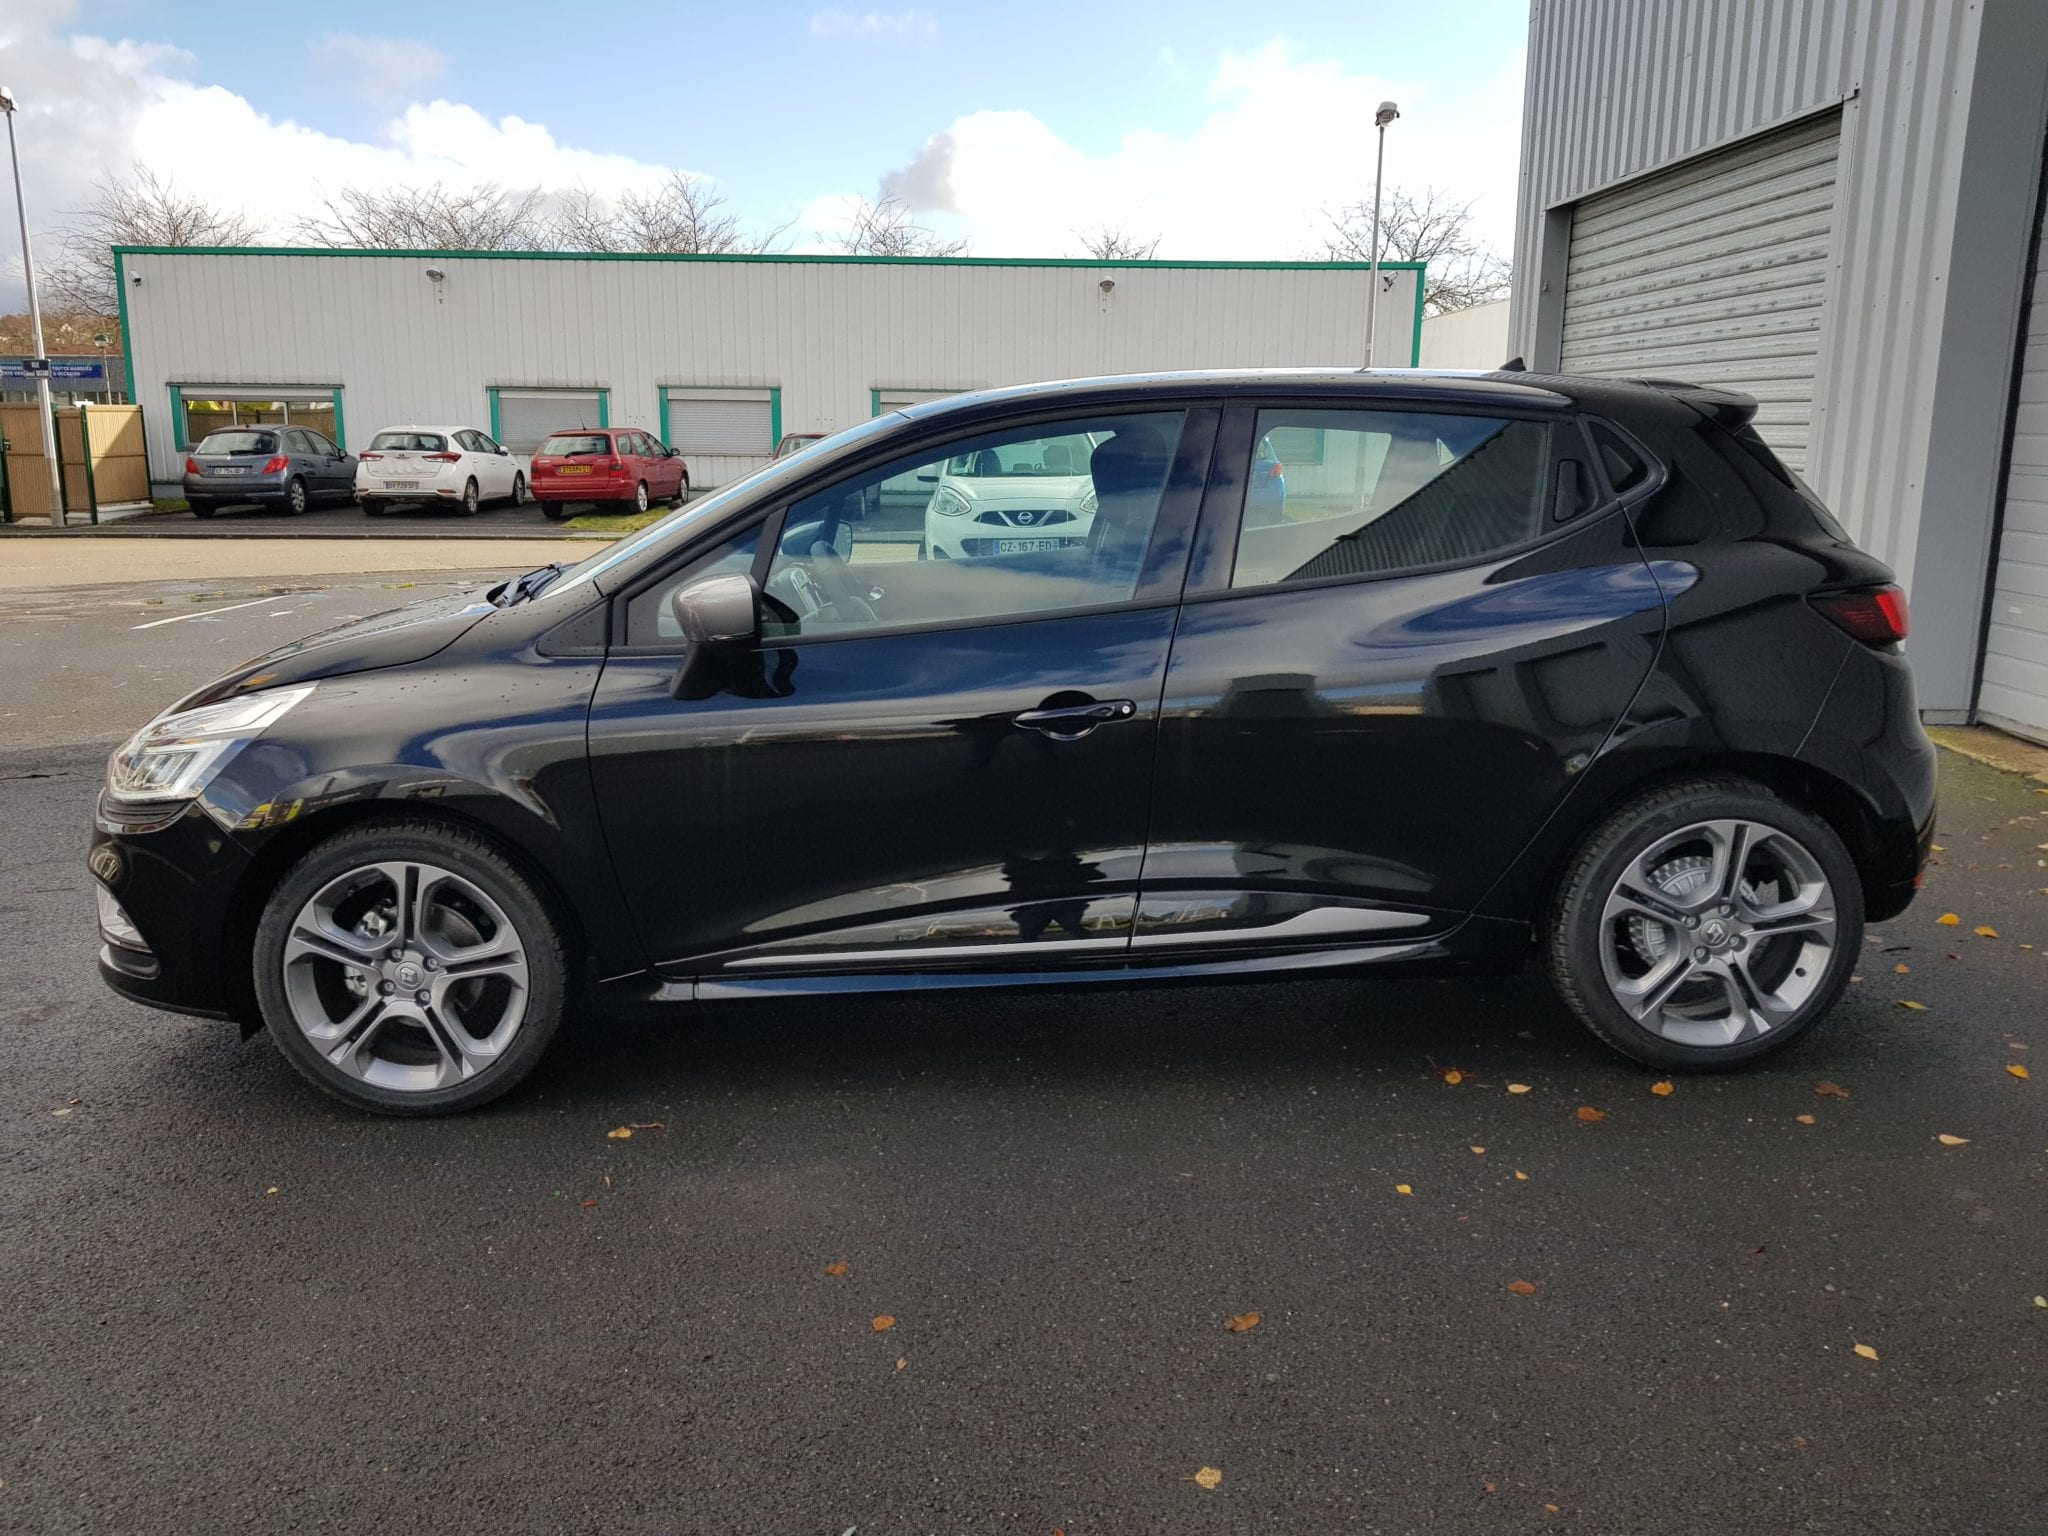 RENAULT NV CLIO 4 TCE 90 ENERGY GT-LINE - Image 1